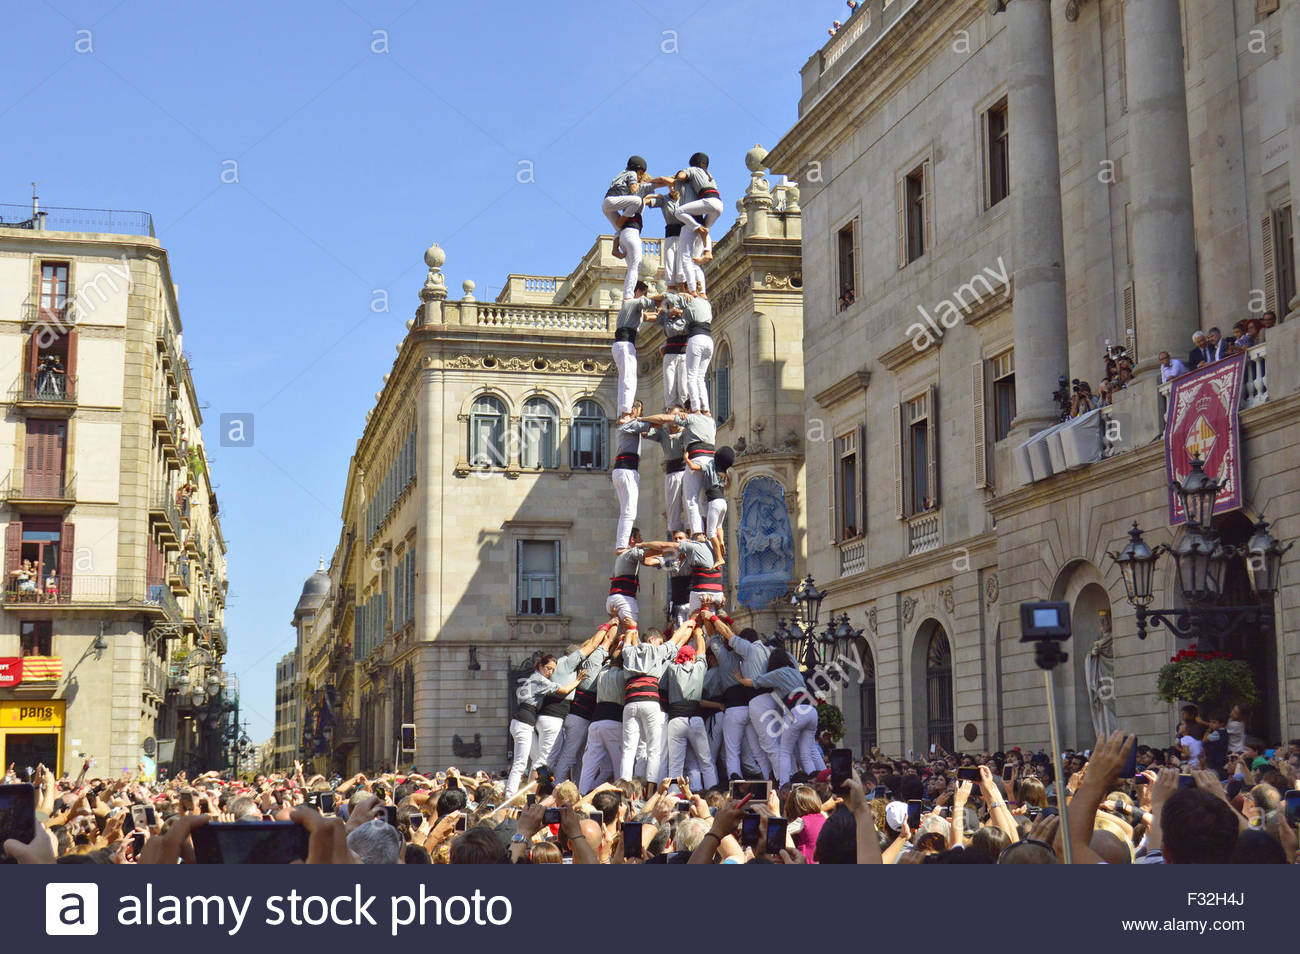 Team of acrobats building 'Human Pyramid' (Castell) during 'La Merce' annual street festival in - Stock Image